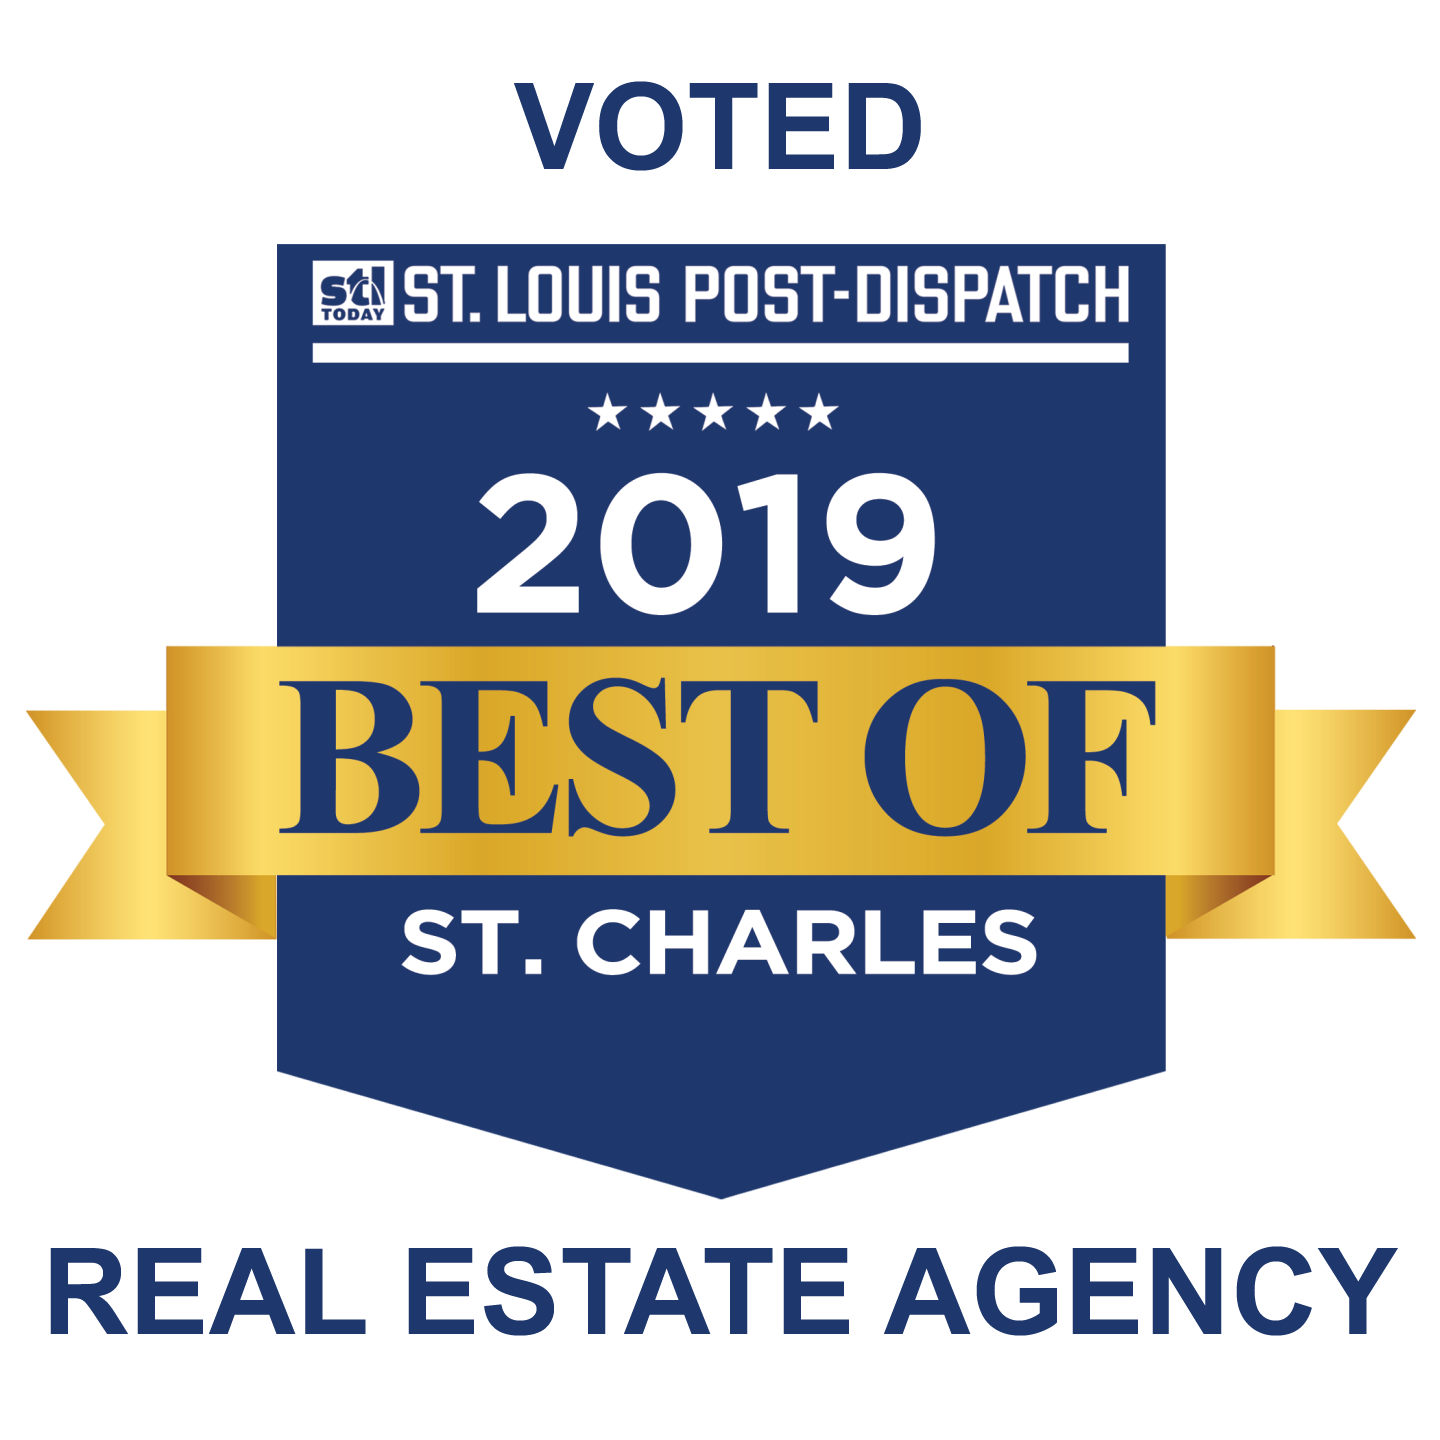 Best of St Charles 2019 - Real Estate Agency